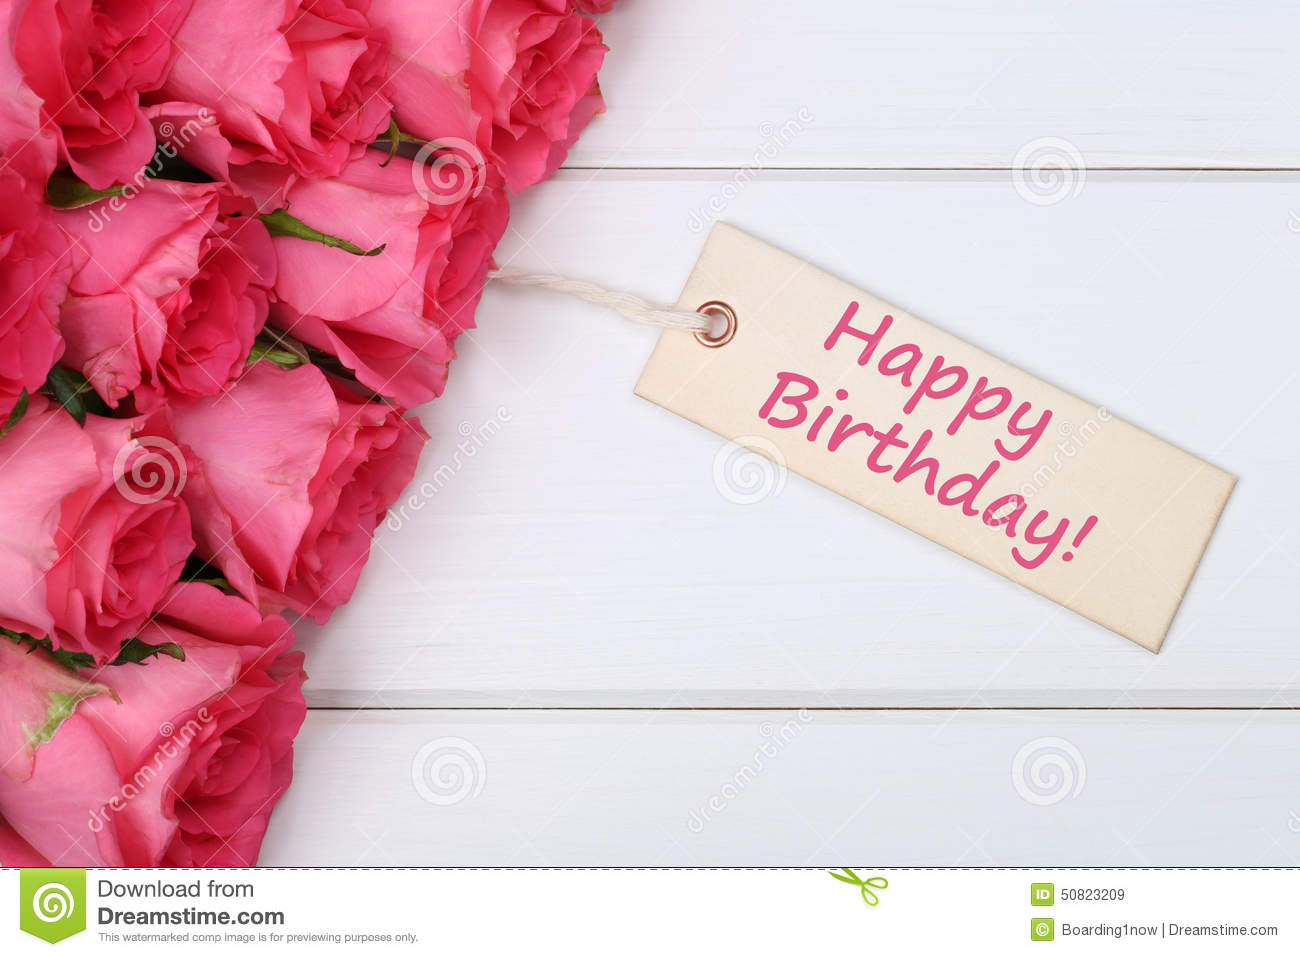 Happy Birthday With Roses Flowers With Greeting Card On A Wooden